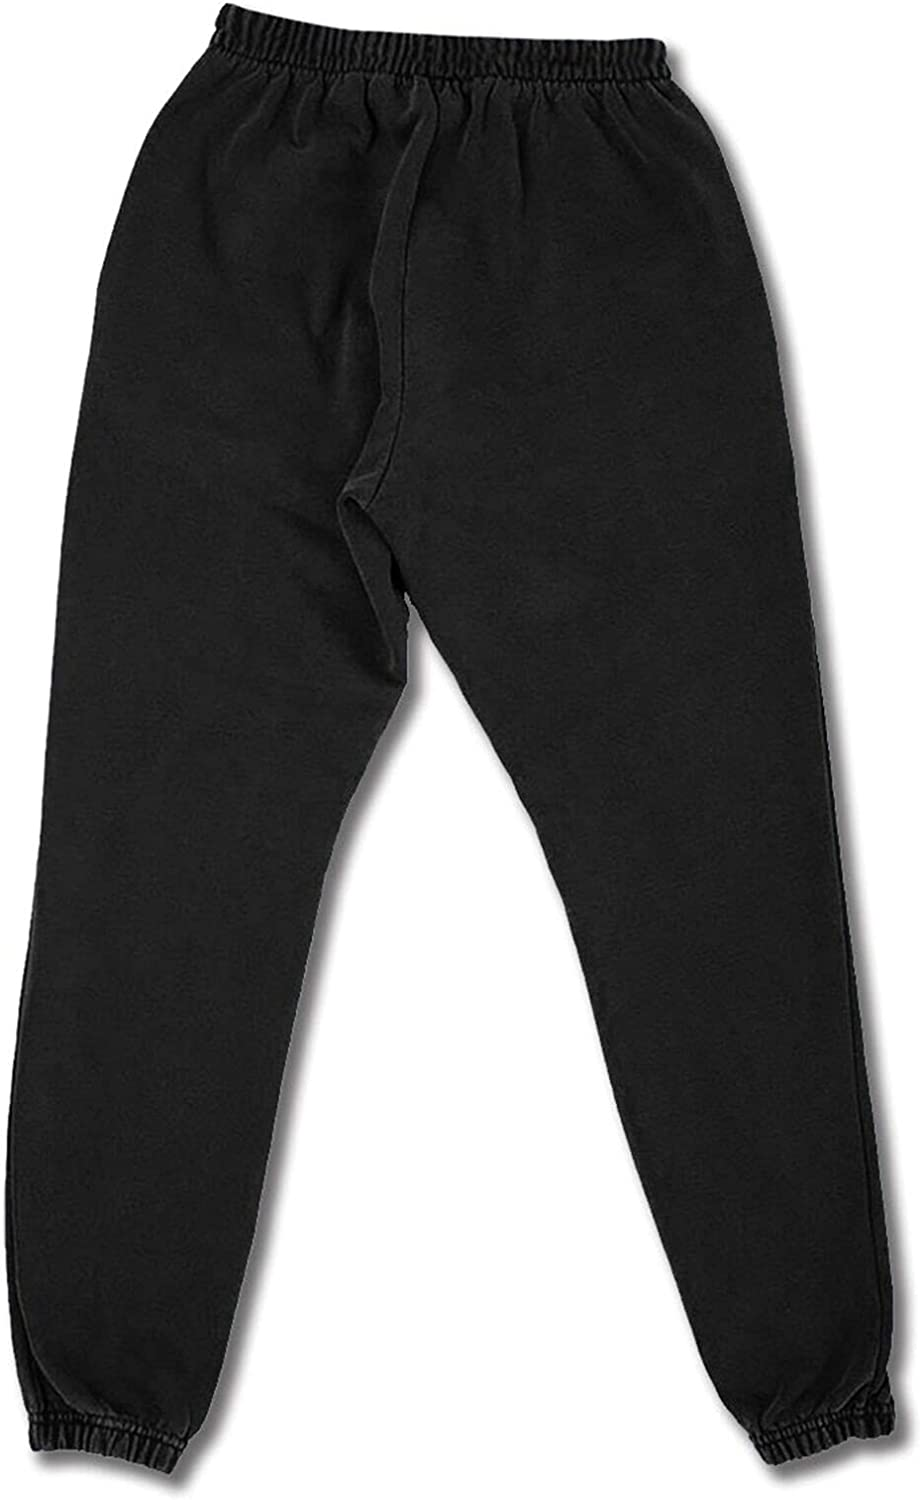 KAWAHATA Bernese Mountain Dog Men's Pants with Pockets Tapered Athletic Sweatpants 3D Casual Active Sports Pants